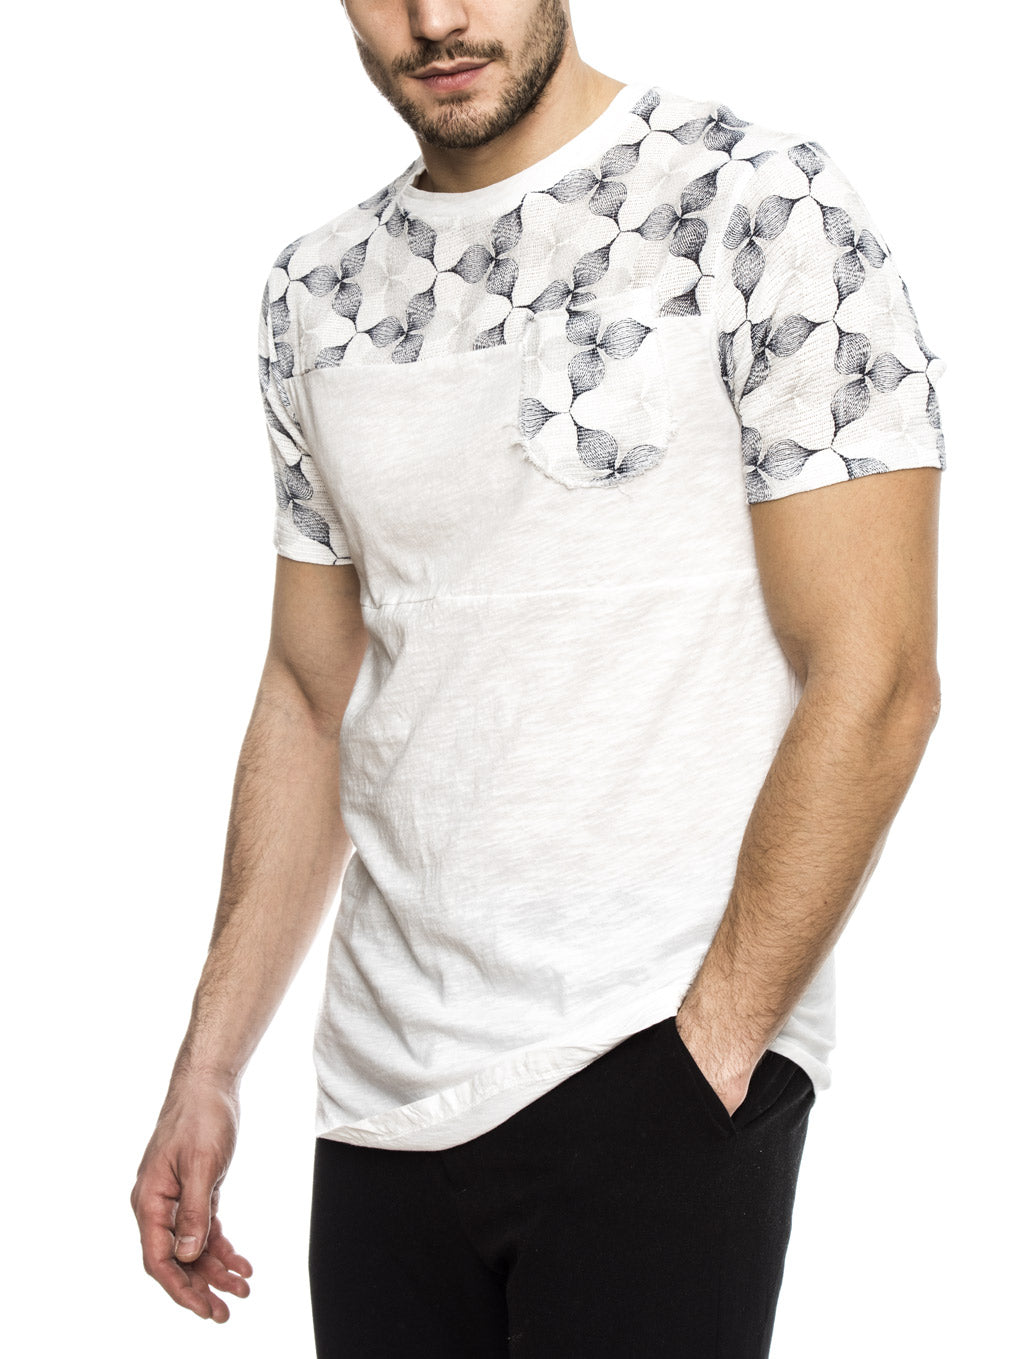 CRONO COTTON T-SHIRT IN PRINTED WHITE